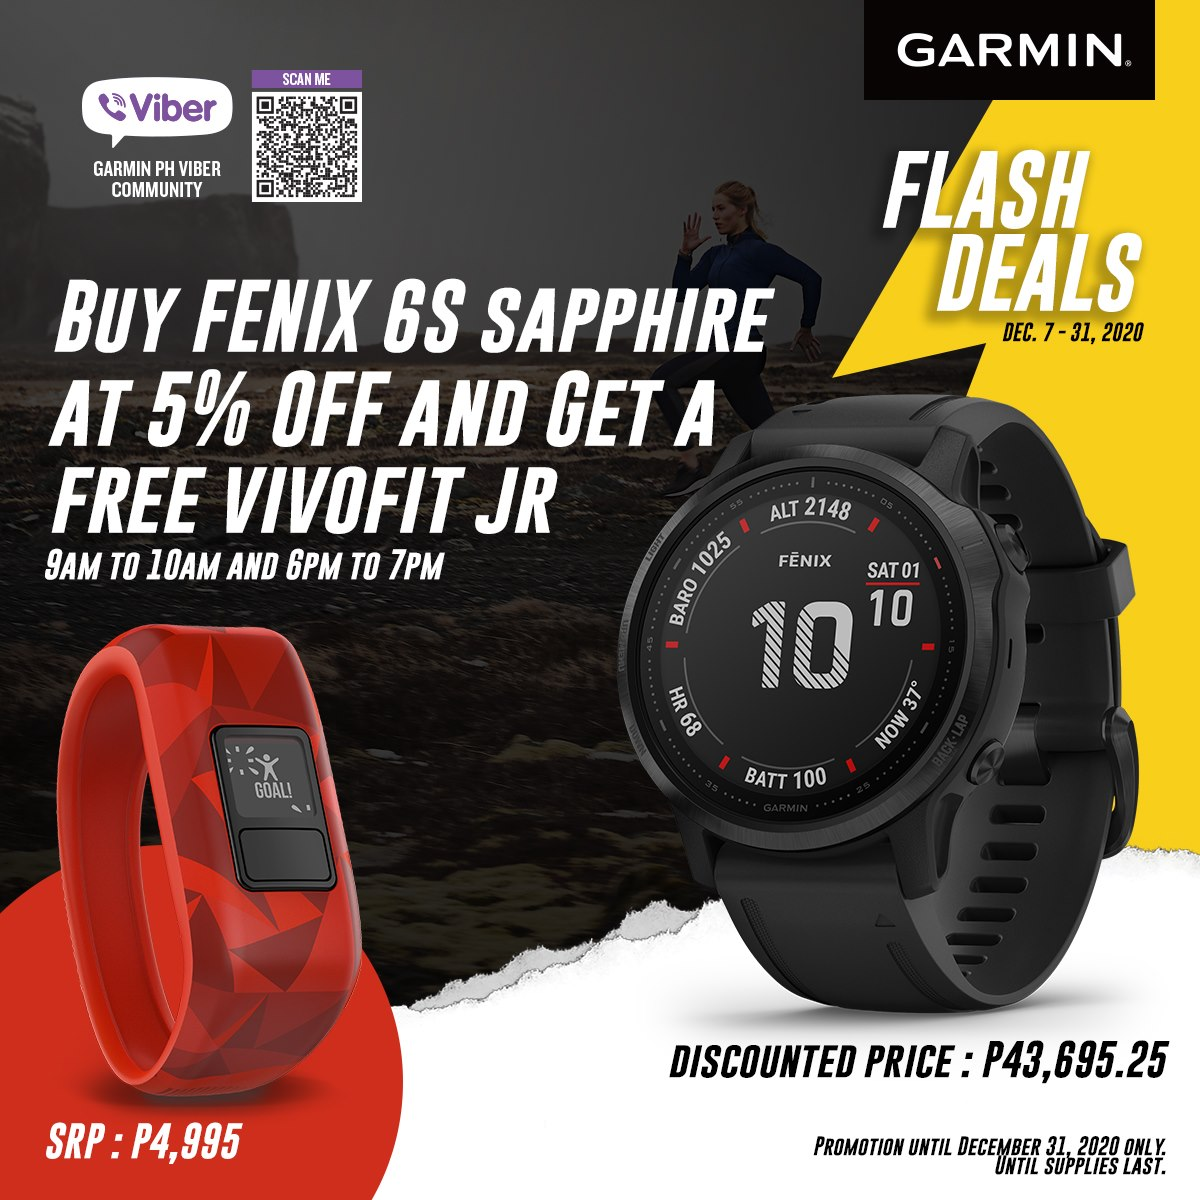 Stay on top of your fitness game this holiday season without breaking the bank with these Garmin PH Viber Exclusive Deals! We're offering FREE SHIPPING nationwide for online purchases too, so whether you're gearing up to stay even stronger for the coming year, or you're sending a gift directly to a loved one's door with a heartfelt note, you can count on us